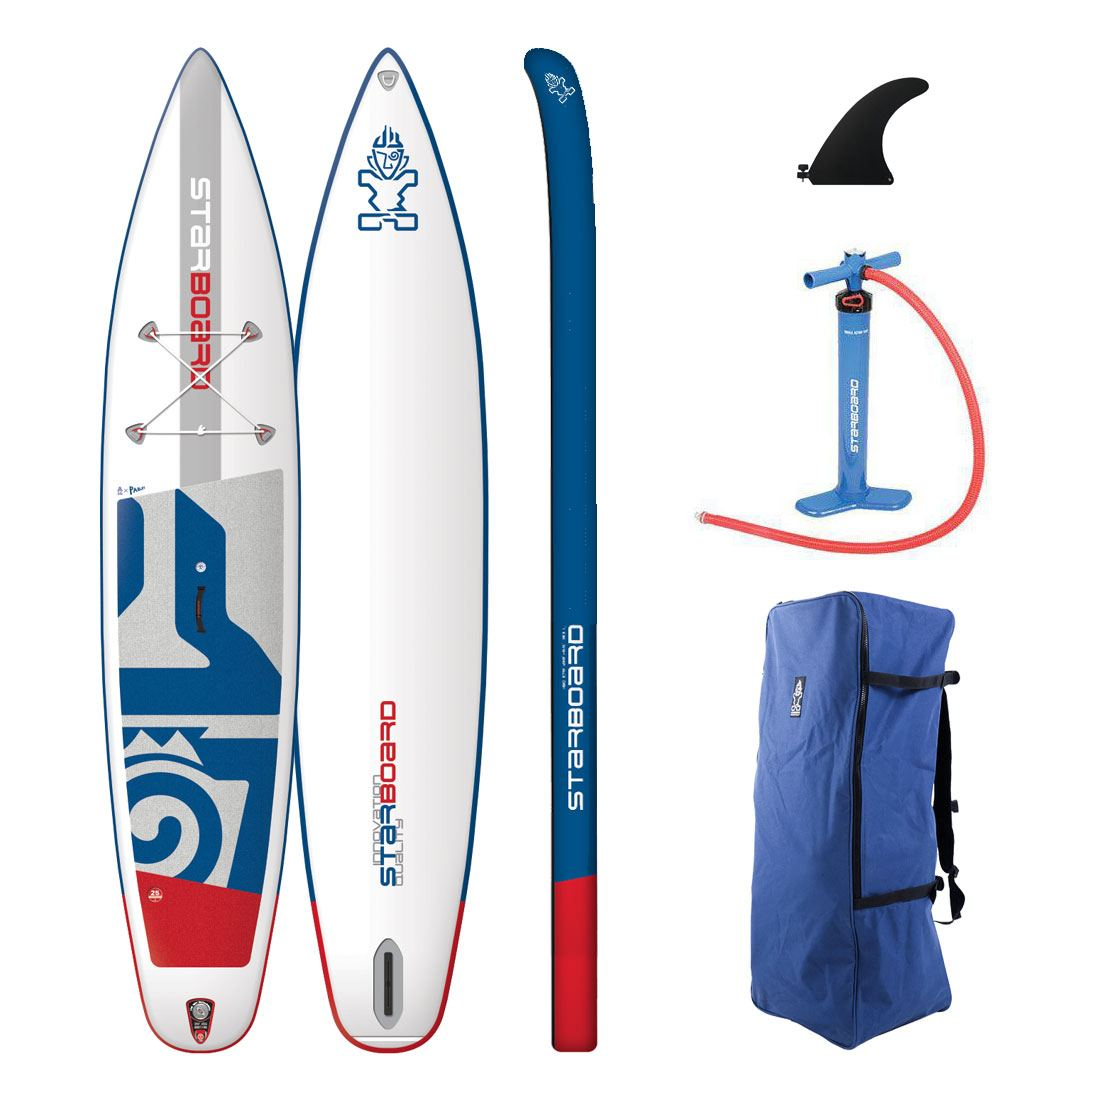 2019 Starboard Inflatable 12'6